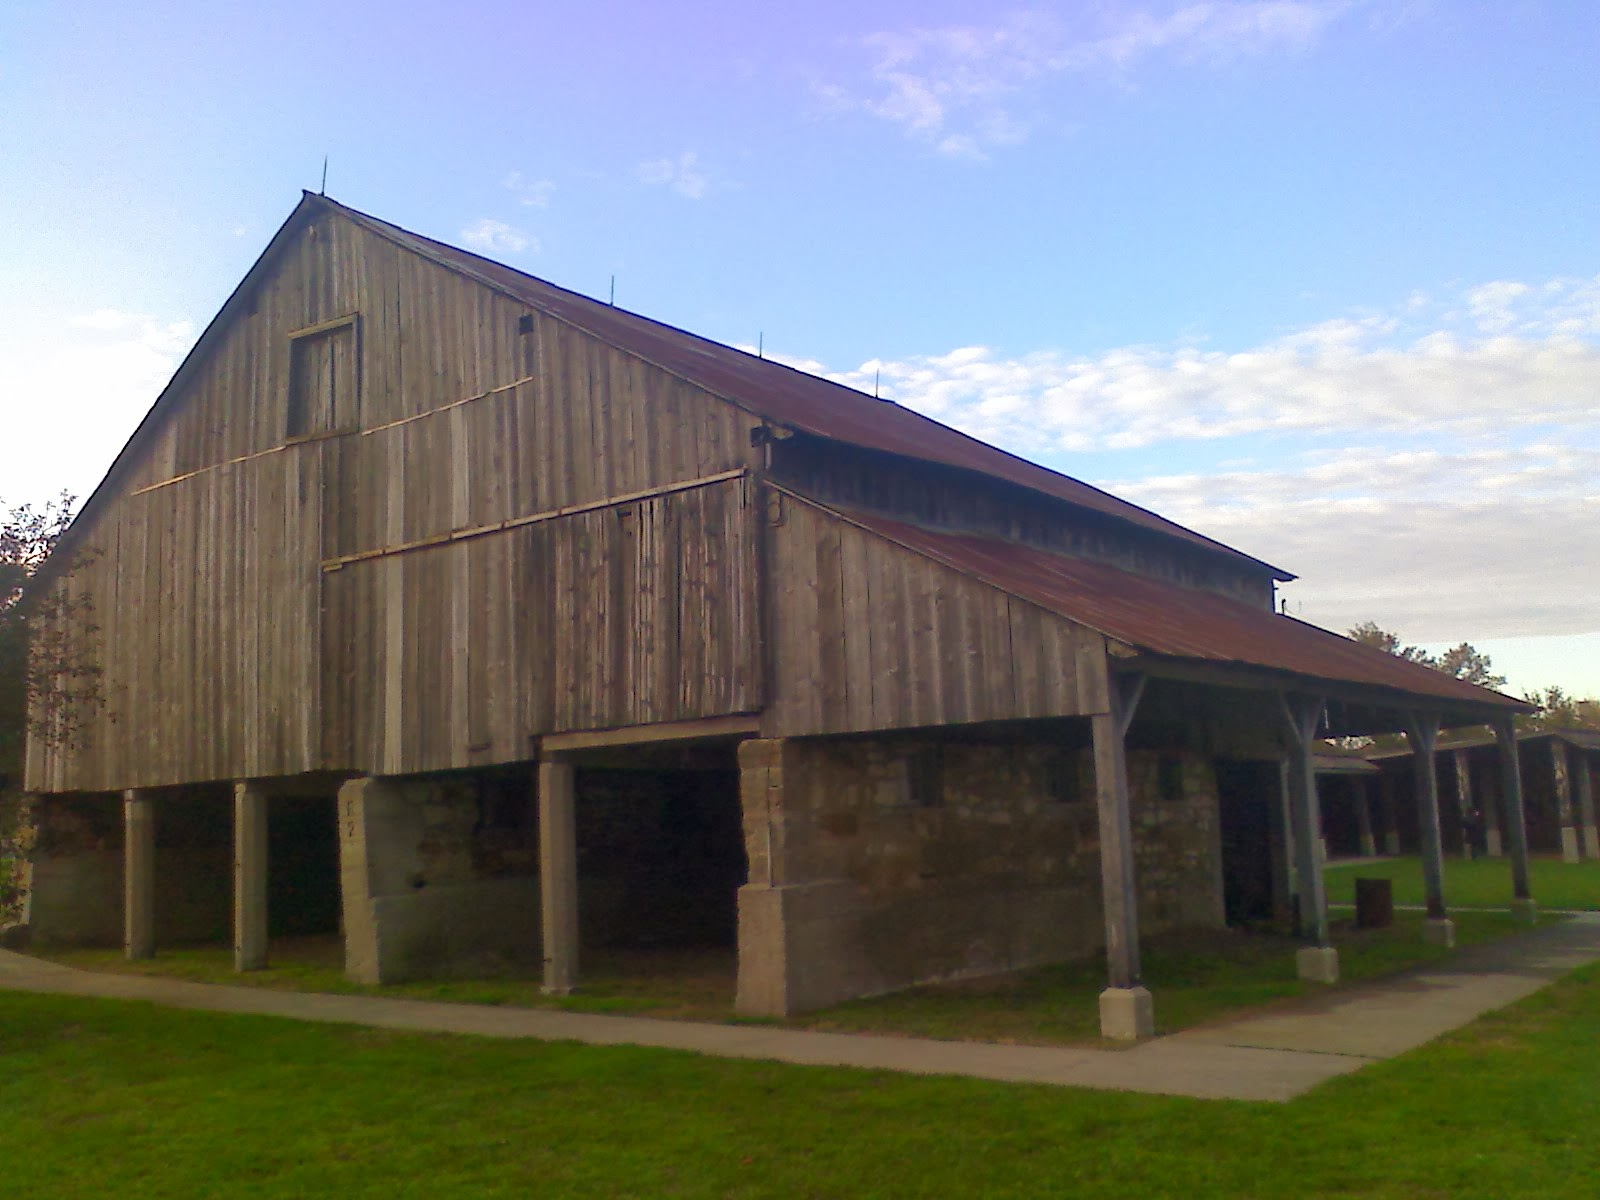 ft horse siding run in amish sheds room structures board tack w barns batten